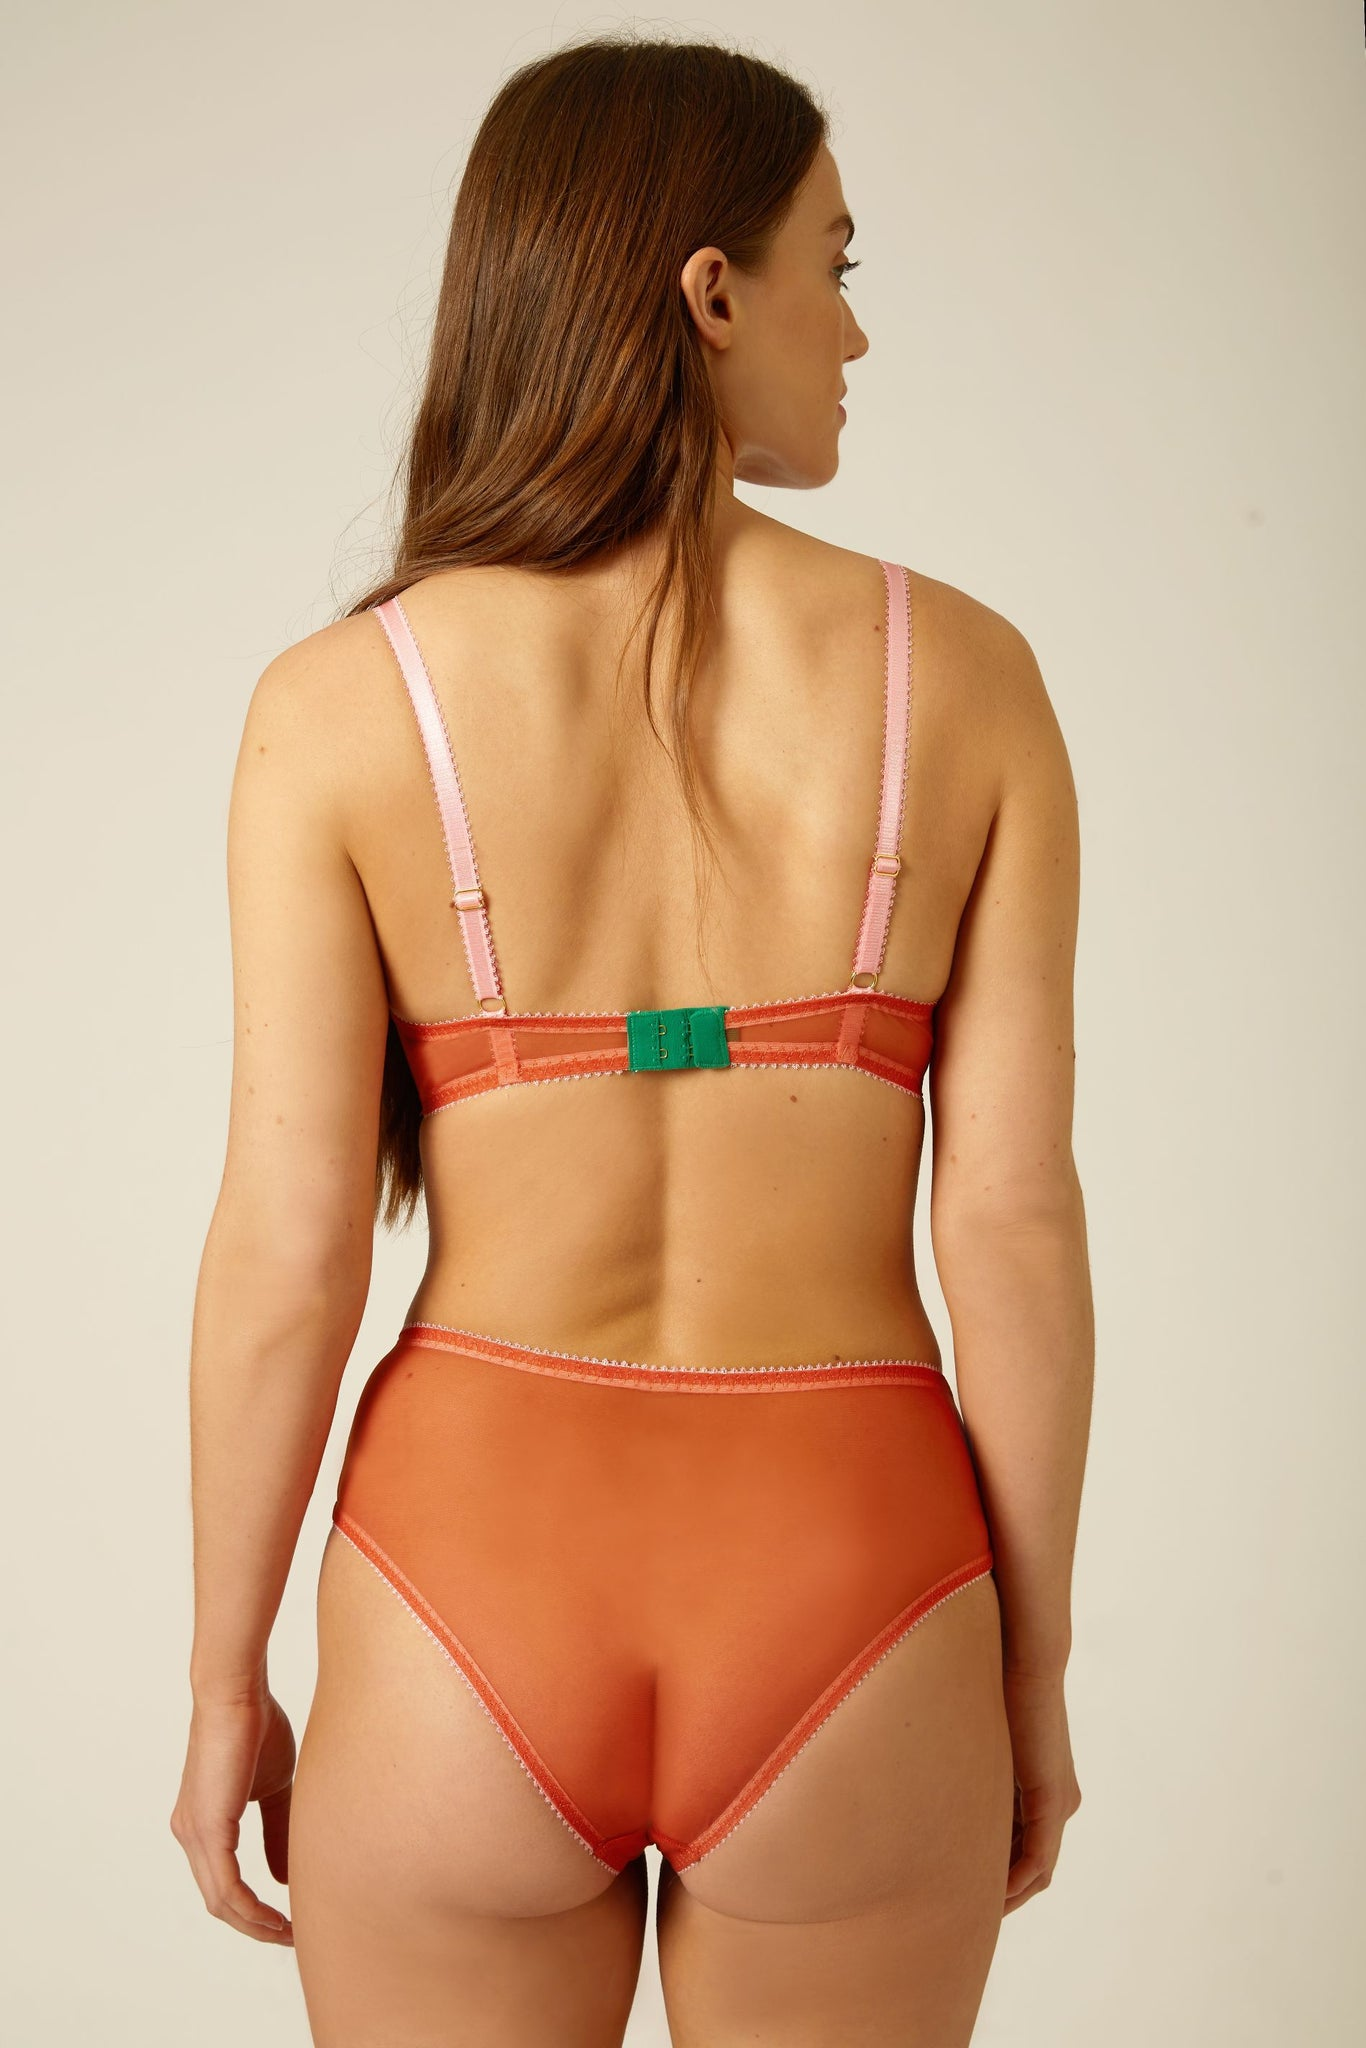 Hanna High Waist Knicker - Dora Larsen | Colourful Lingerie‎